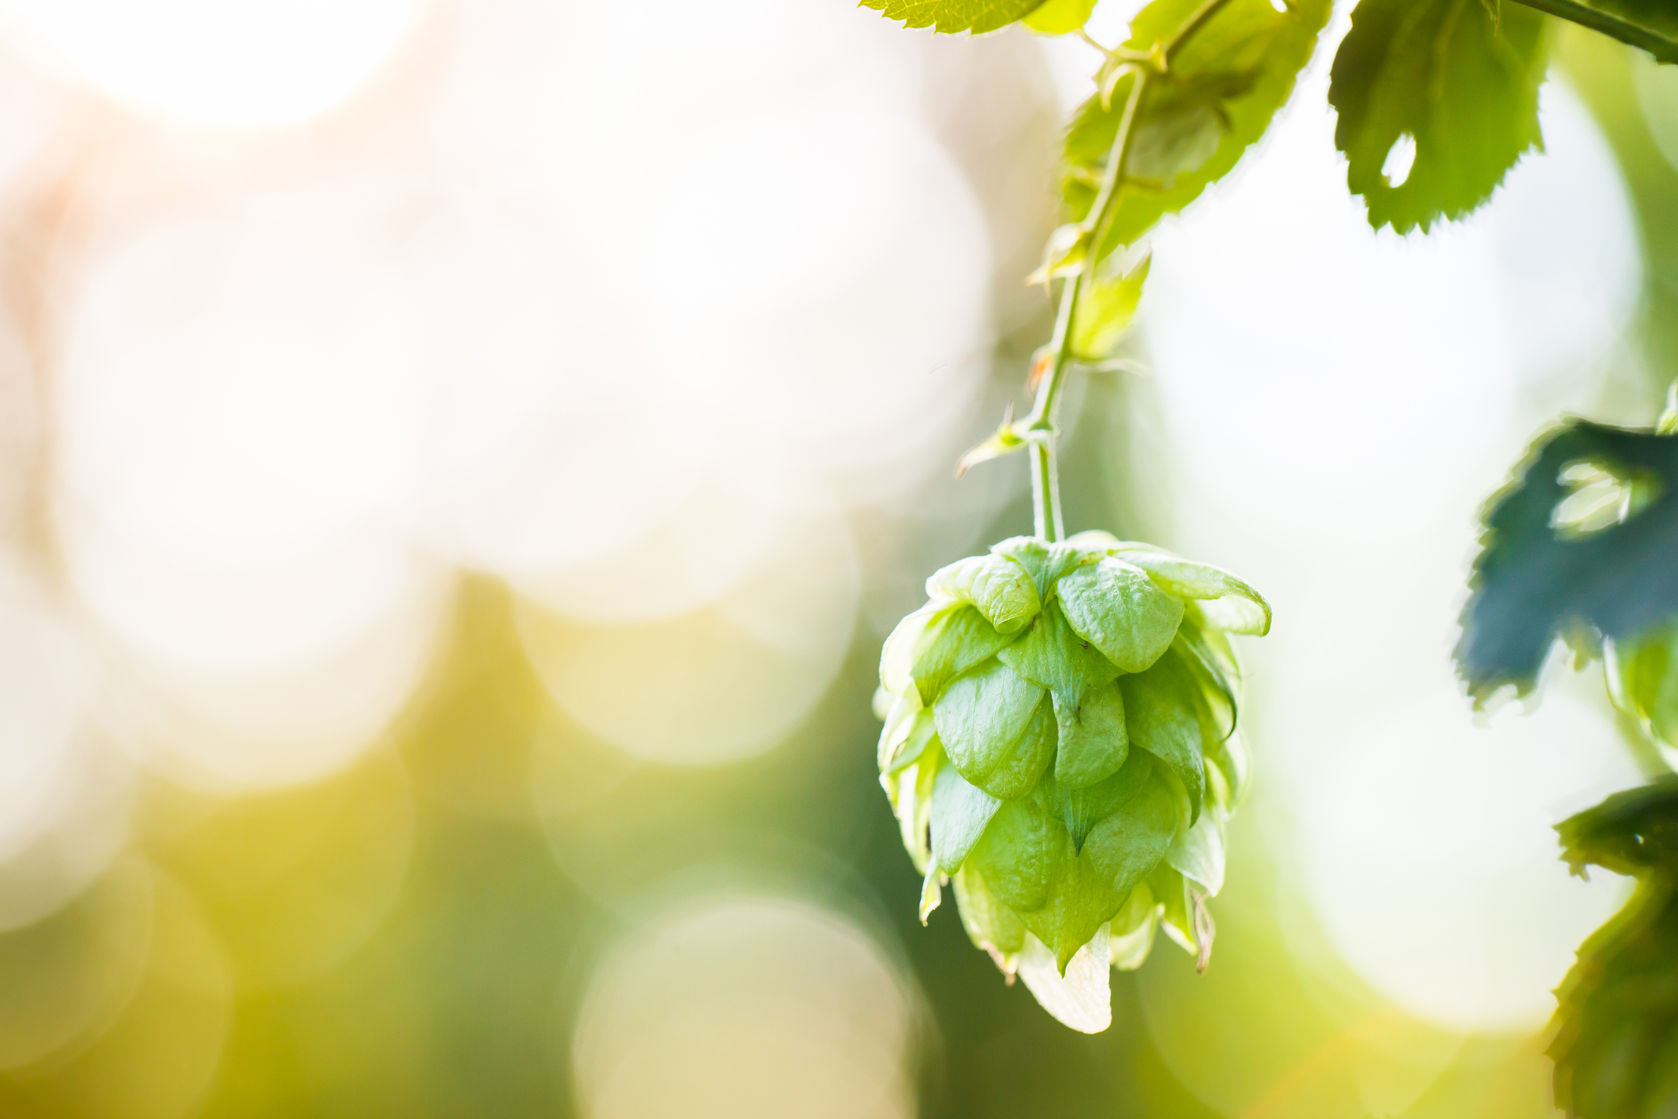 hops extract helps depression, anxiety, stress in students